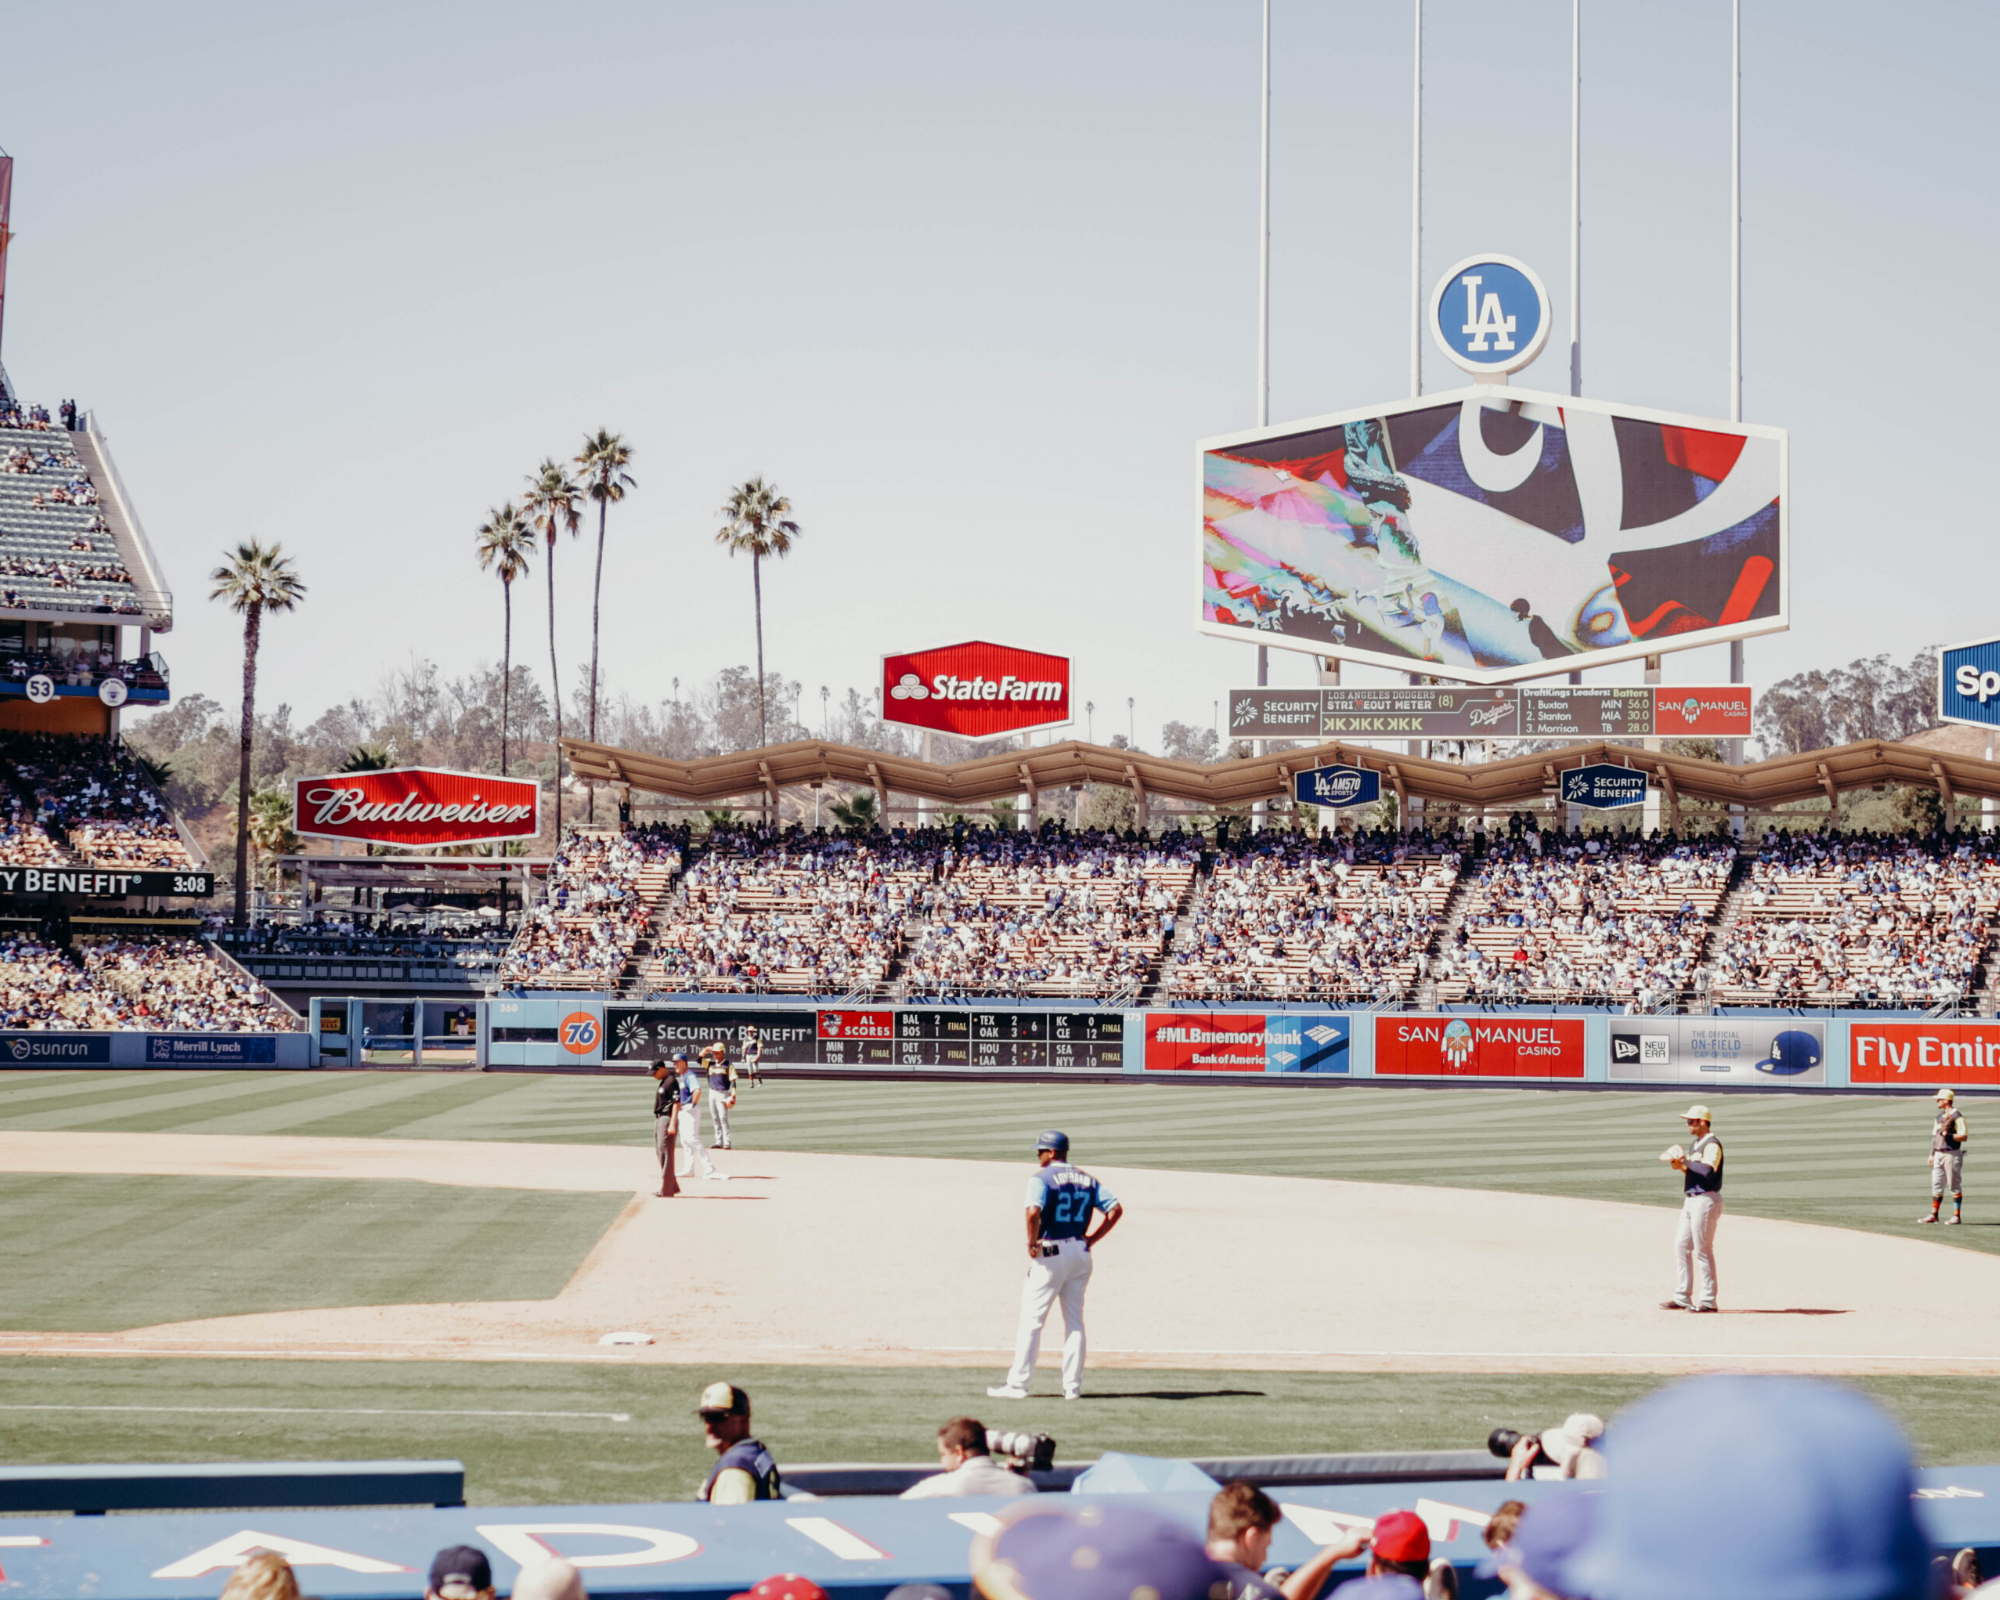 A Dodger and Anaheim Angels Game from Hunter's camera